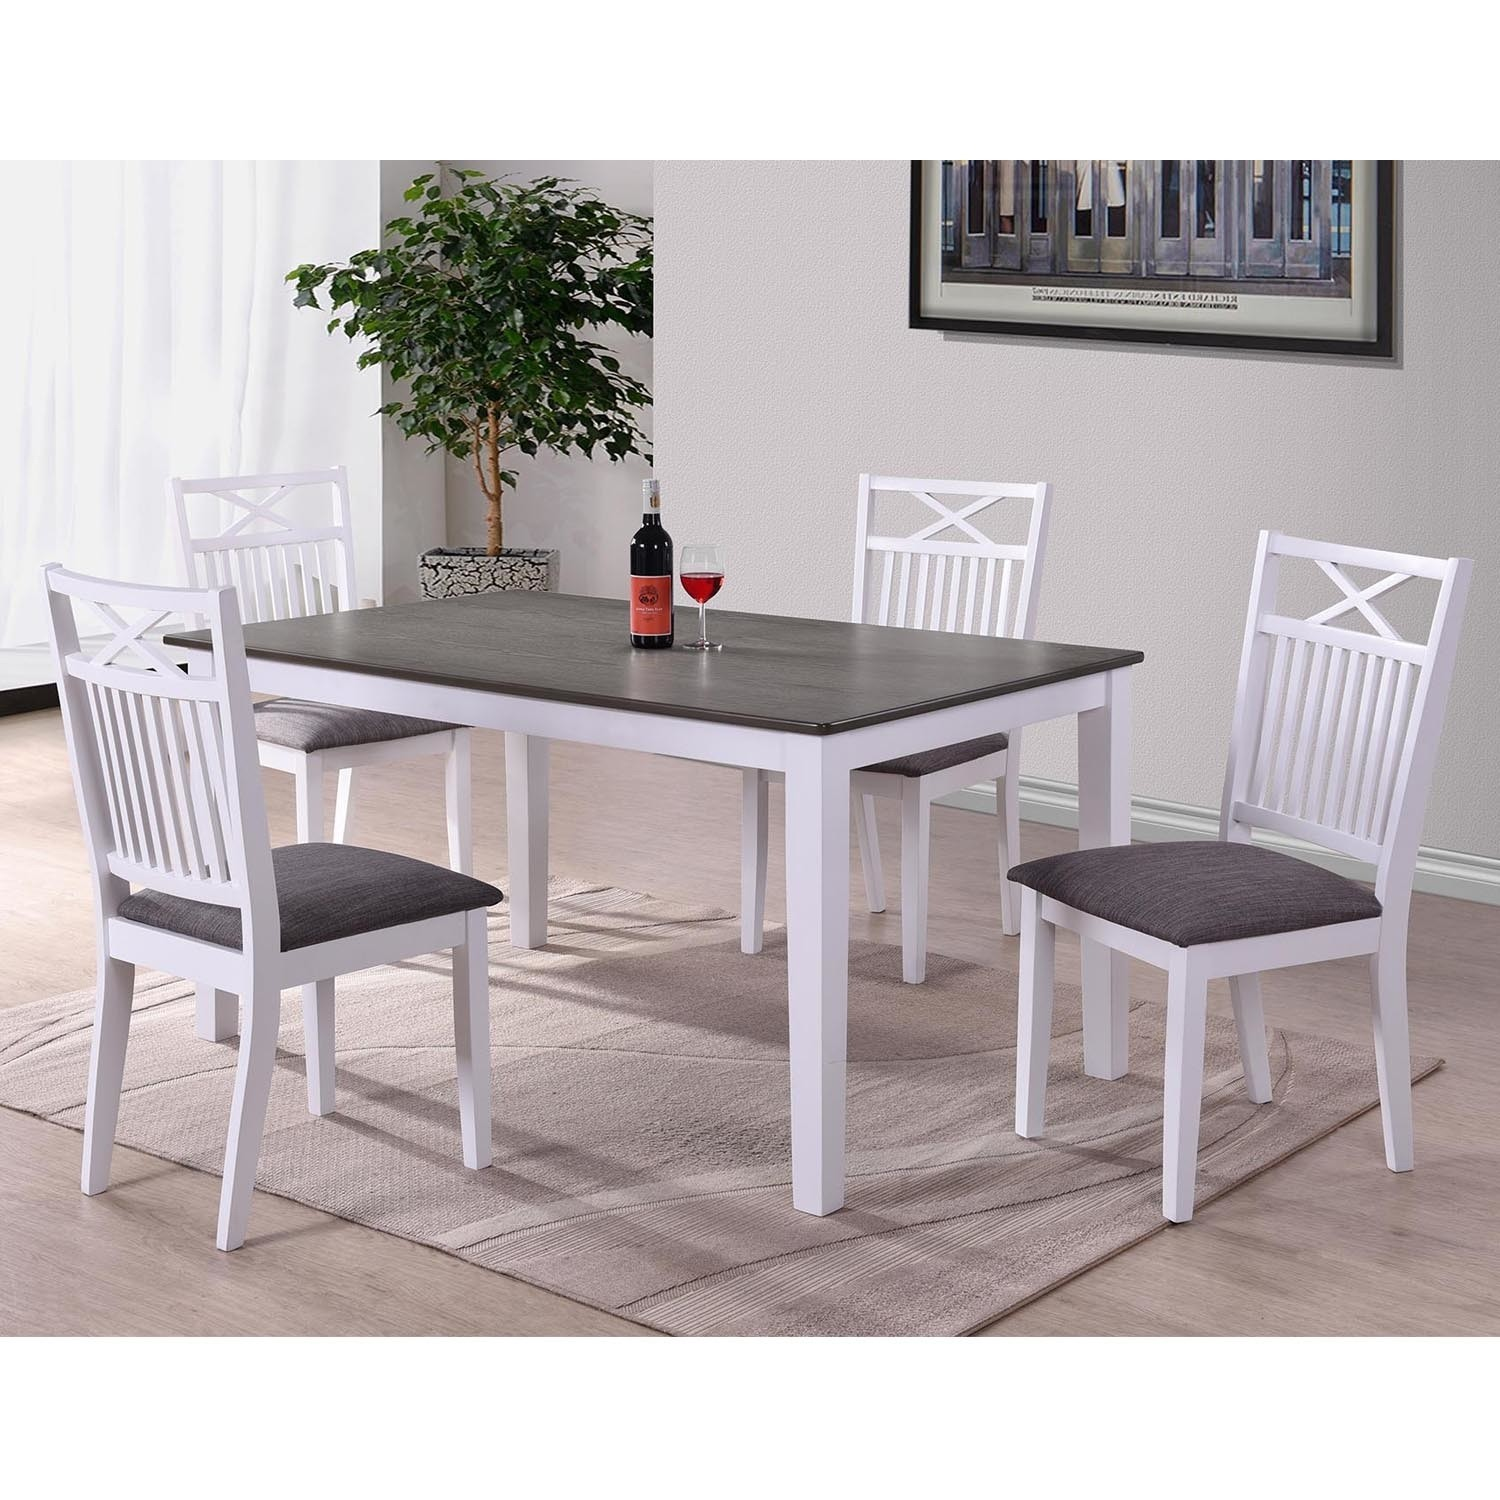 Melbourne Island Two Tone Rectangular Dining Table in White/Dark Wood  sc 1 st  Furniture 123 : two tone kitchen table - hauntedcathouse.org